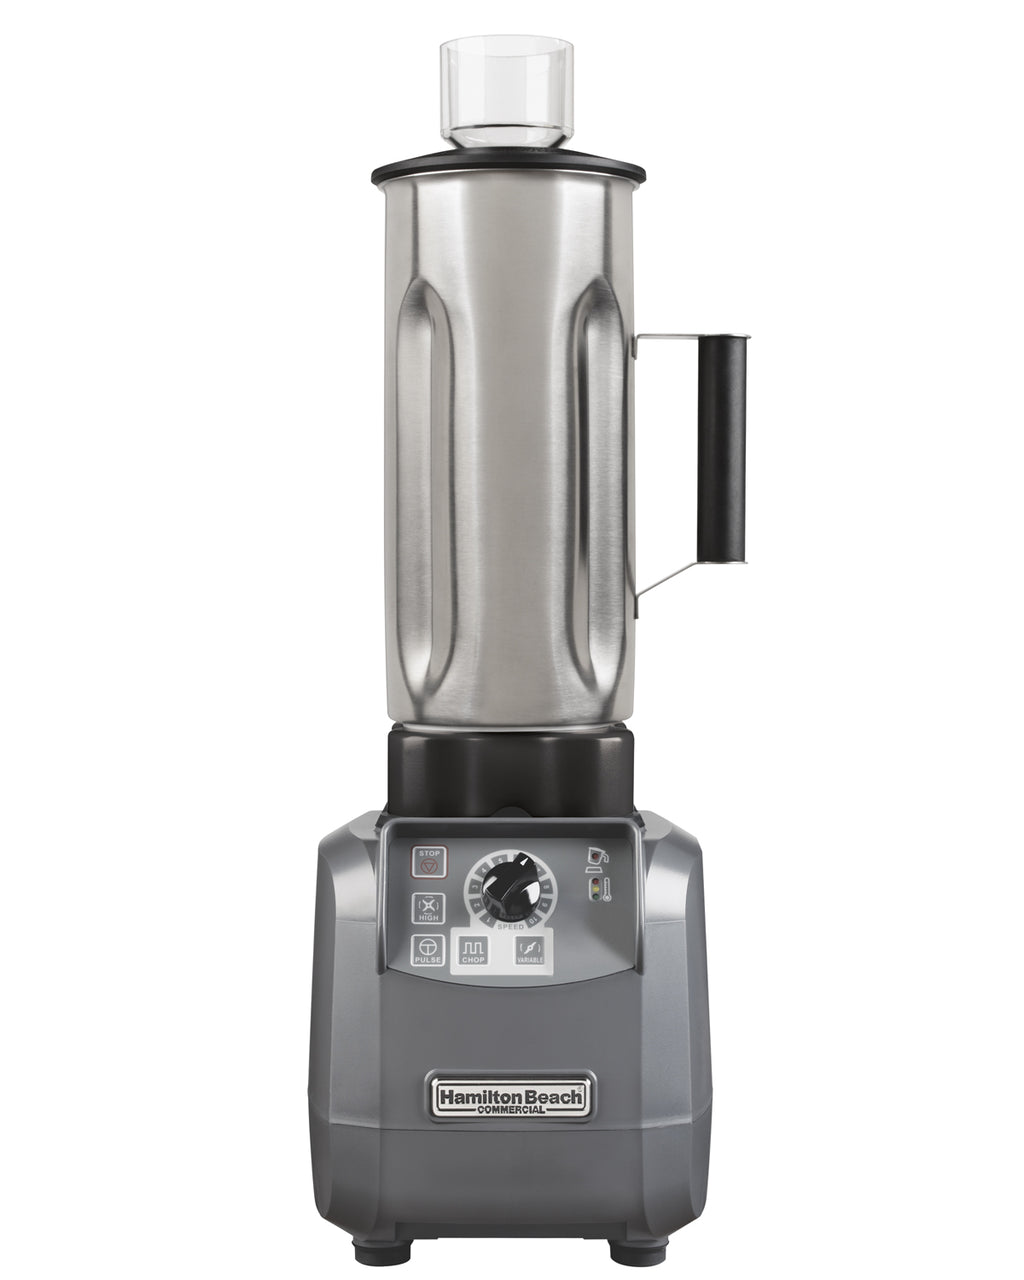 Hamilton Beach 3HP Expeditor Food Blender - 1.8 Litre,Food Blender,Hamilton Beach